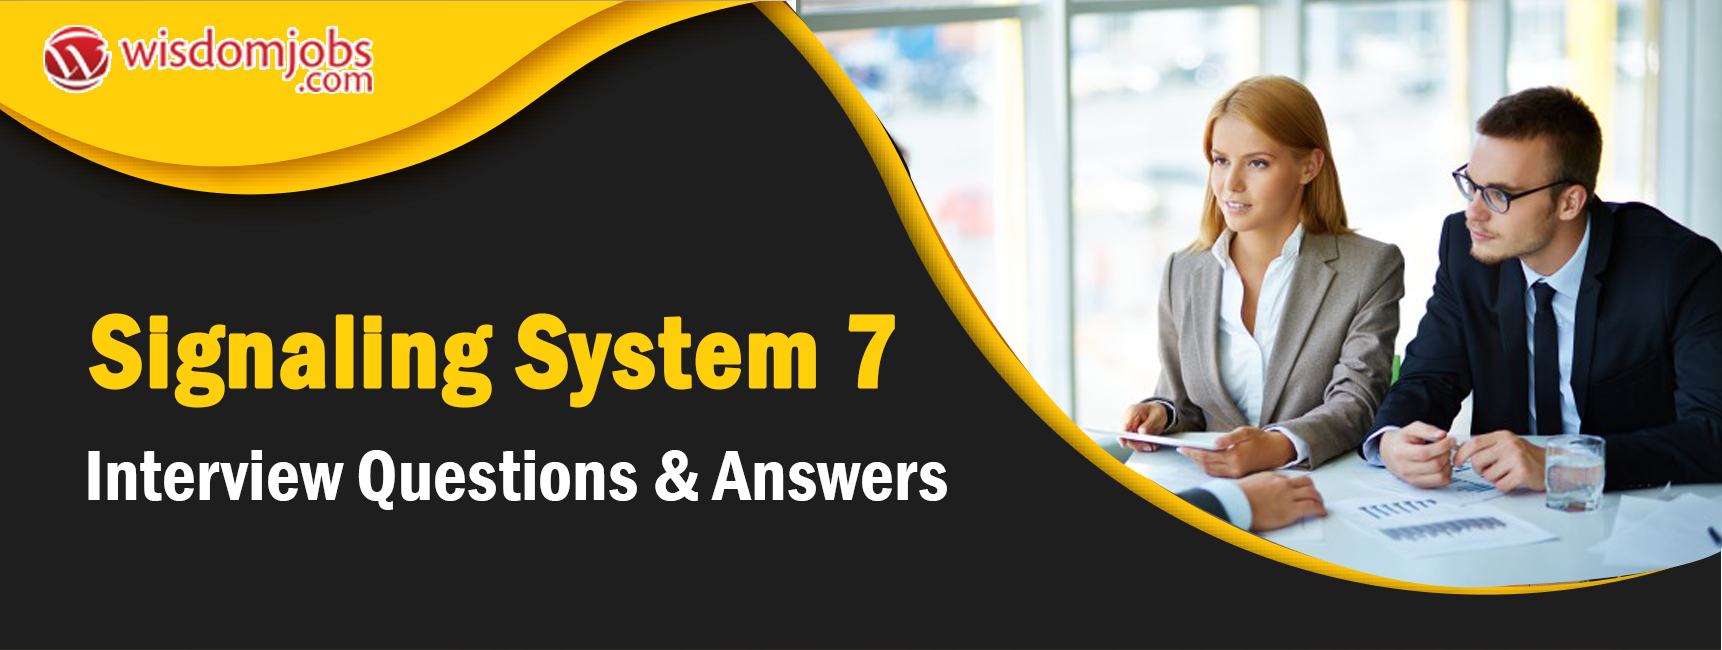 Top 250 Signaling System 7 Interview Questions